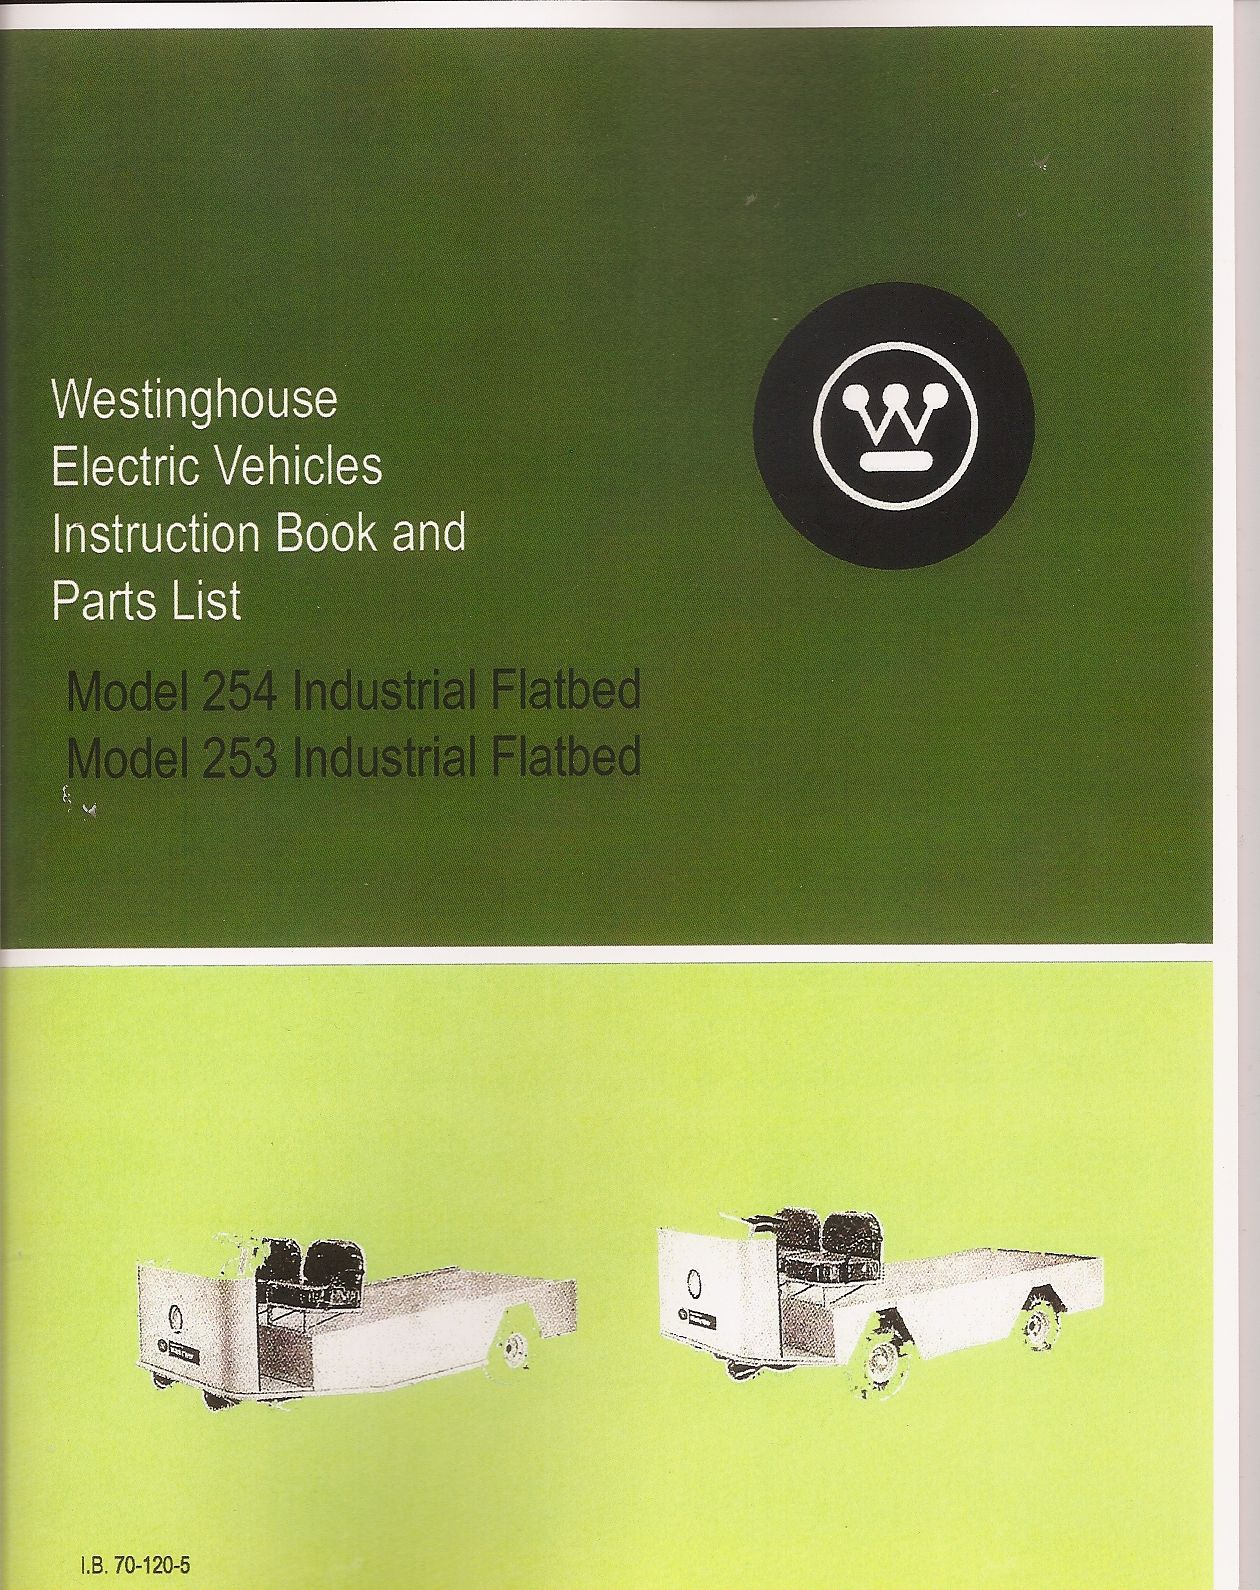 PU55-180 - Parts & Instruction Manual, 253 & 254